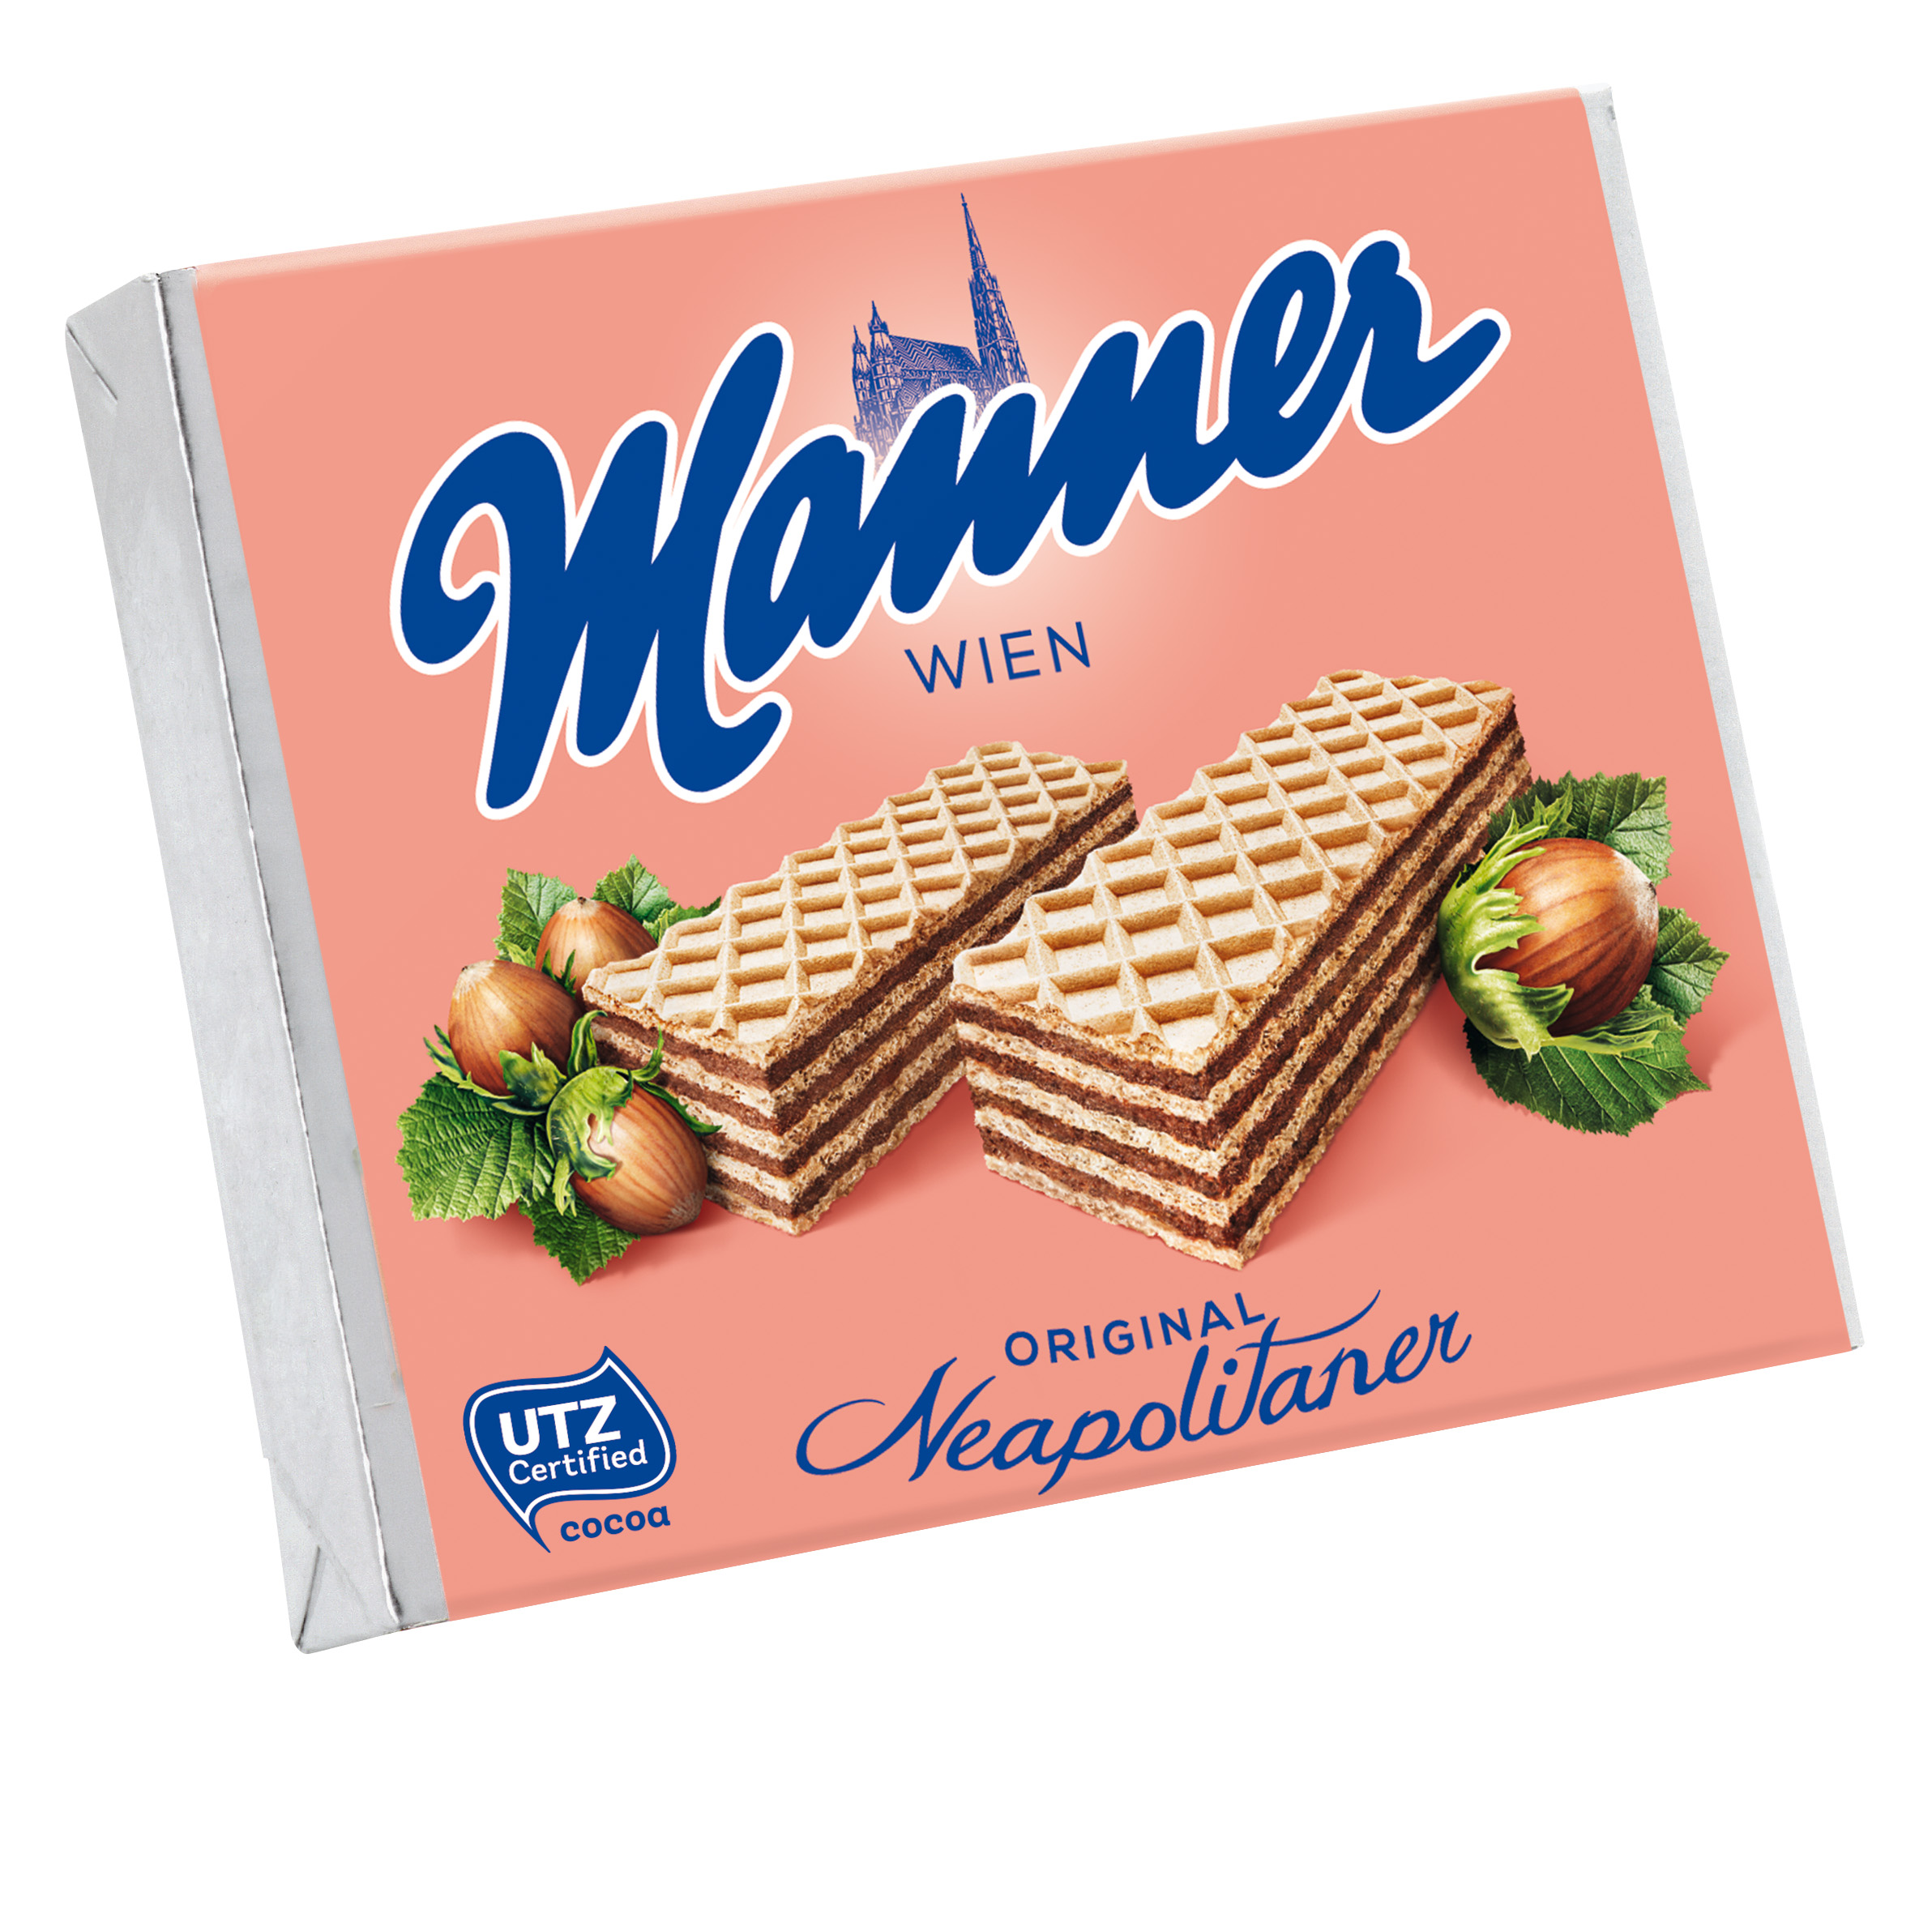 Manner Neapolitaner crispy wafers with nut filling